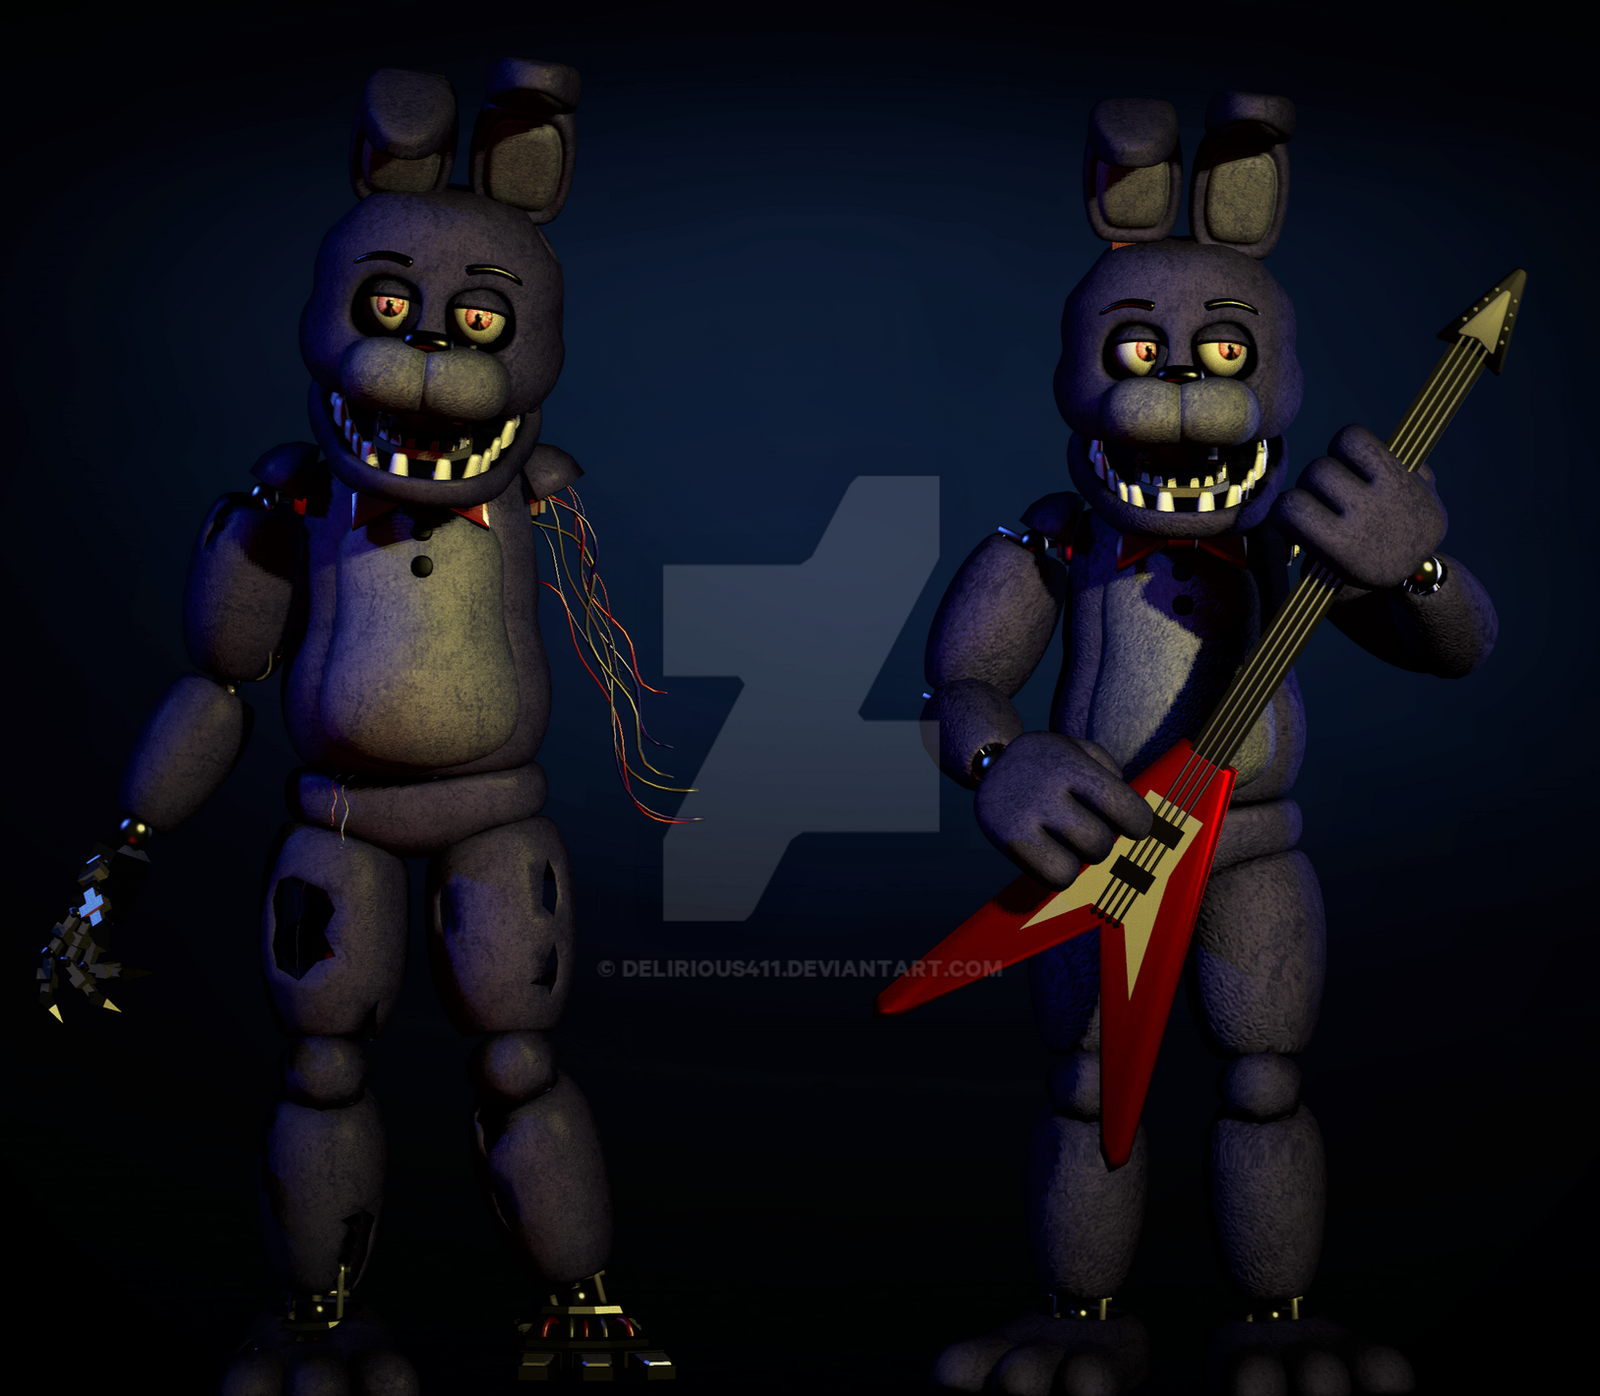 [FNAF SFM] Withered Bonnie V2 (NonCanon) By Delirious411